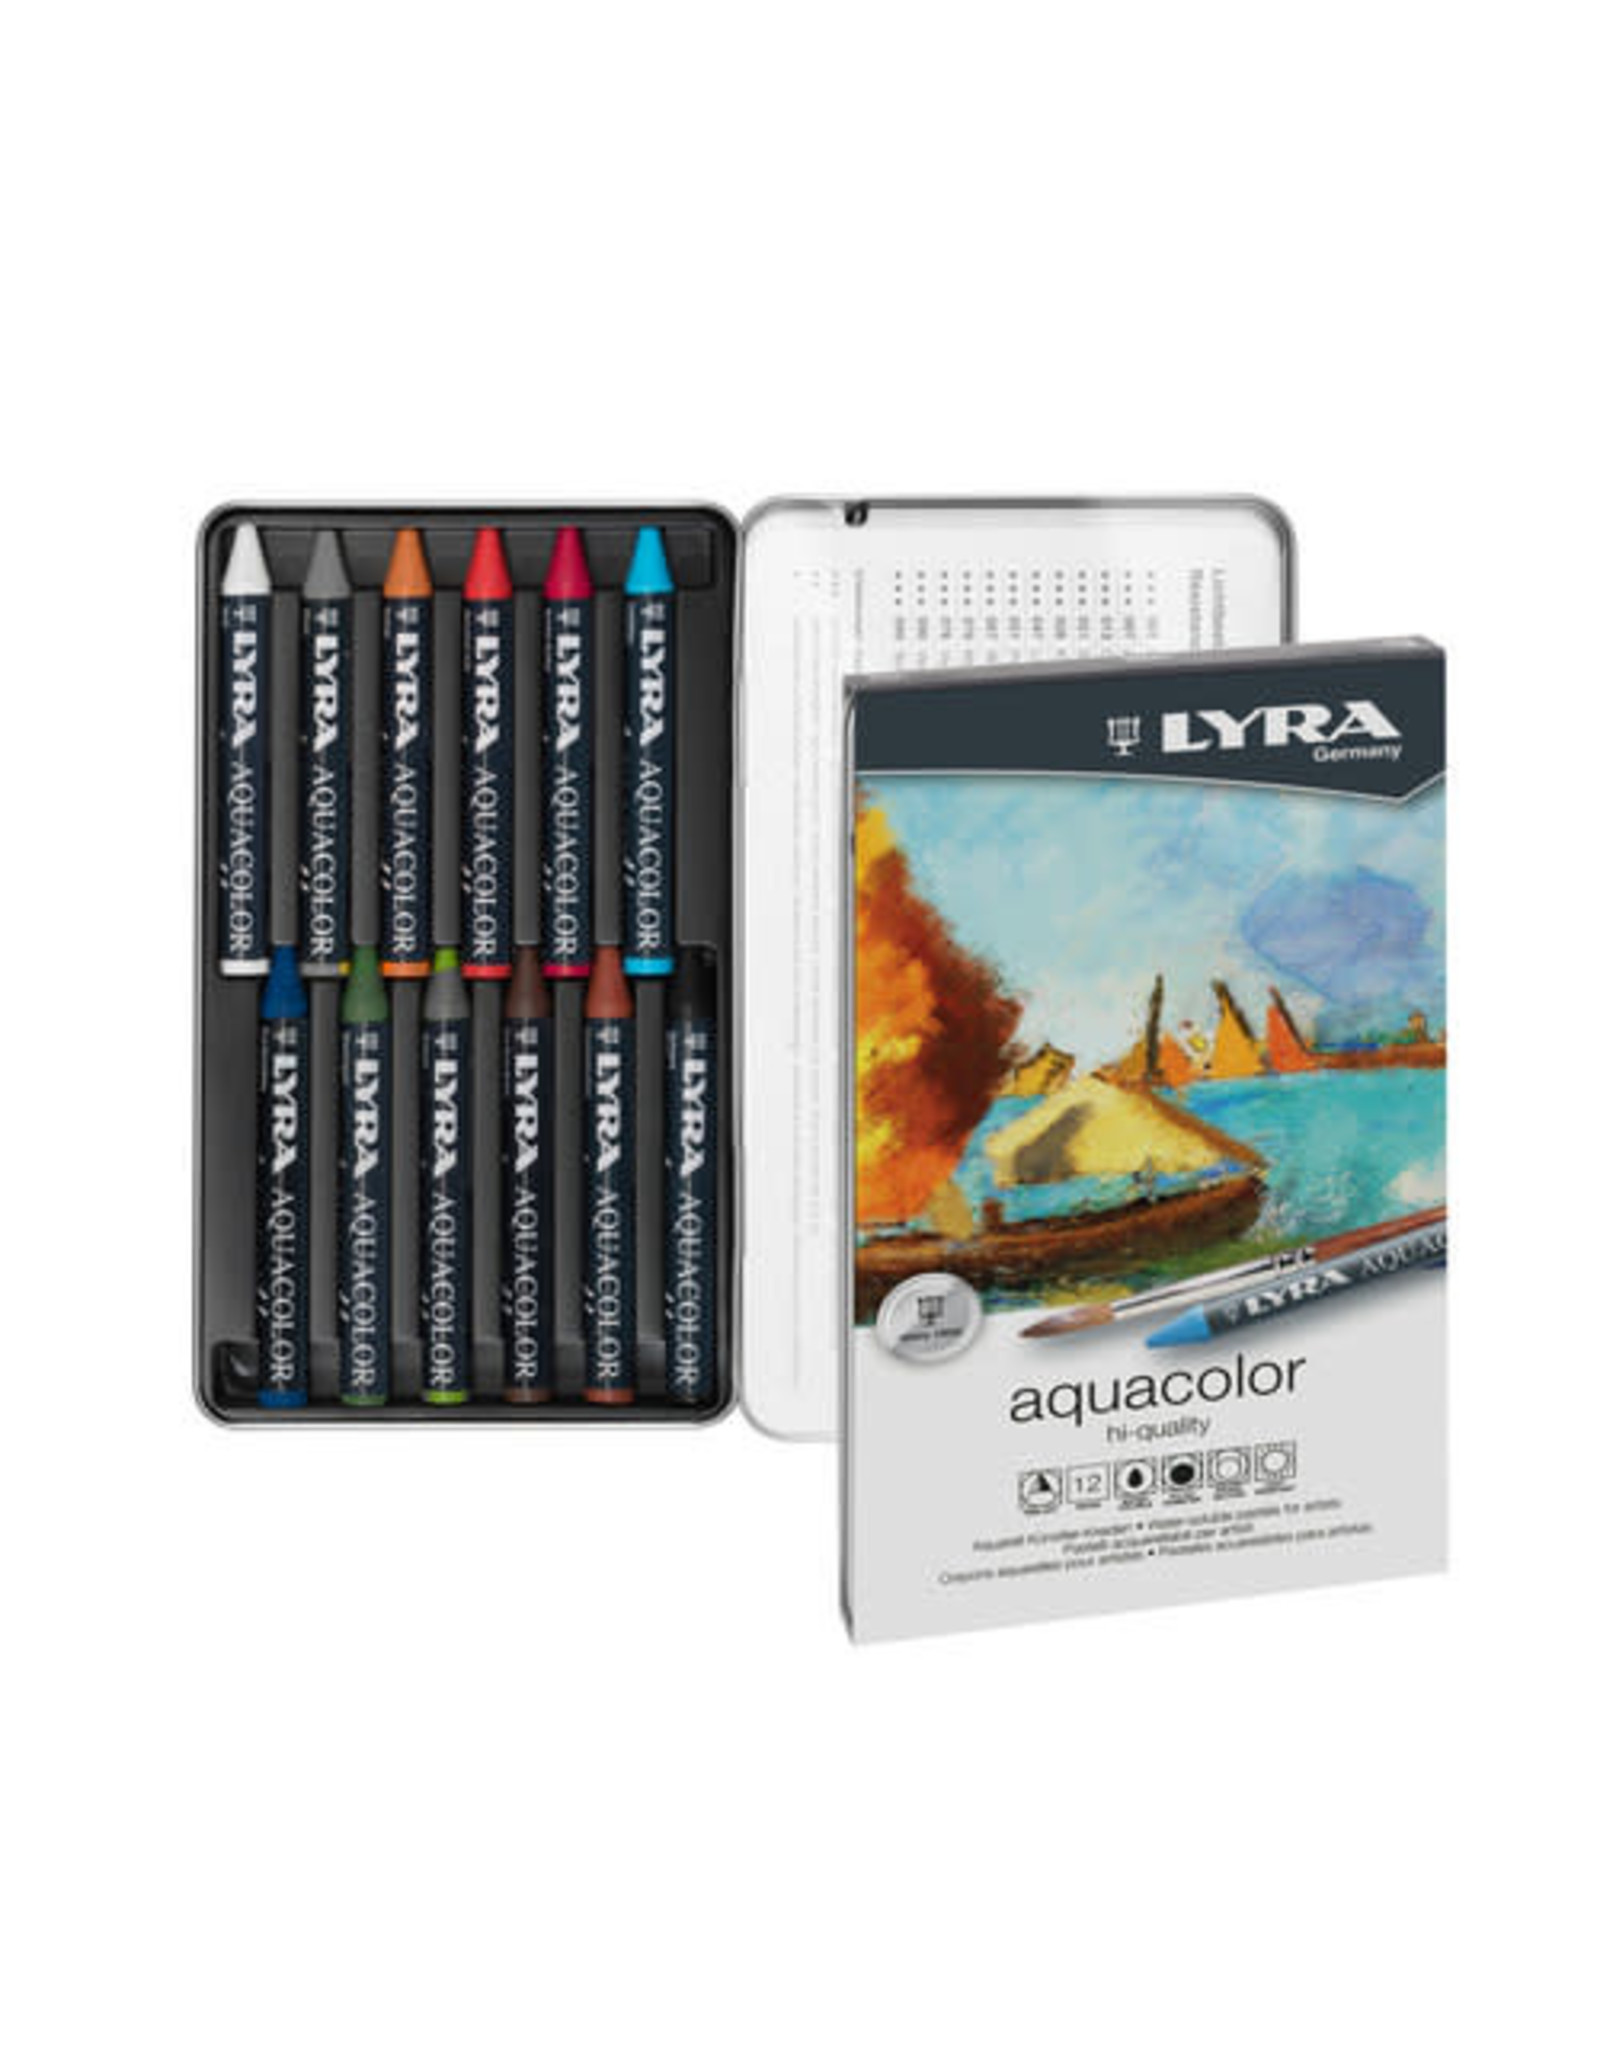 LYRA LYRA Aquacolor Watersoluble Crayons 12pc